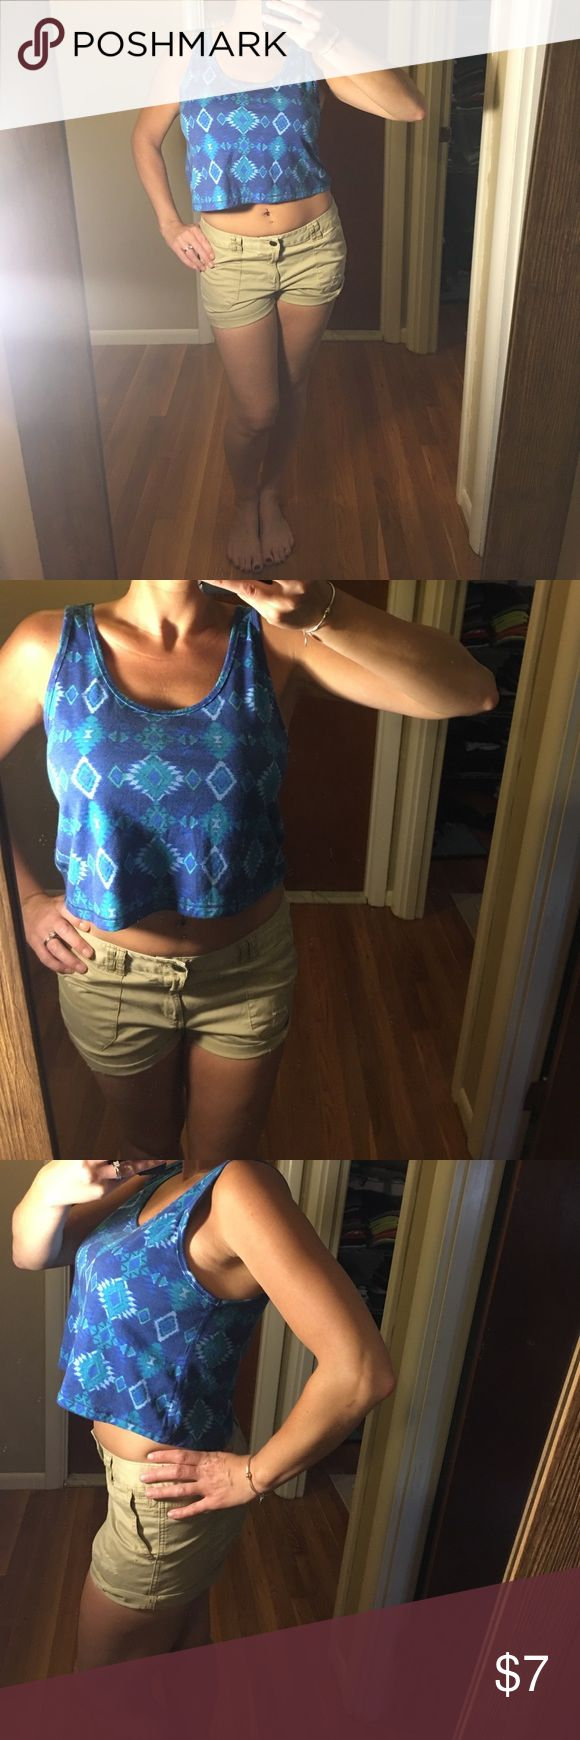 Forever21 blue Aztec crop top Super cute forever 21 blue Aztec crop top tank. NWT! Forever 21 Tops Crop Tops